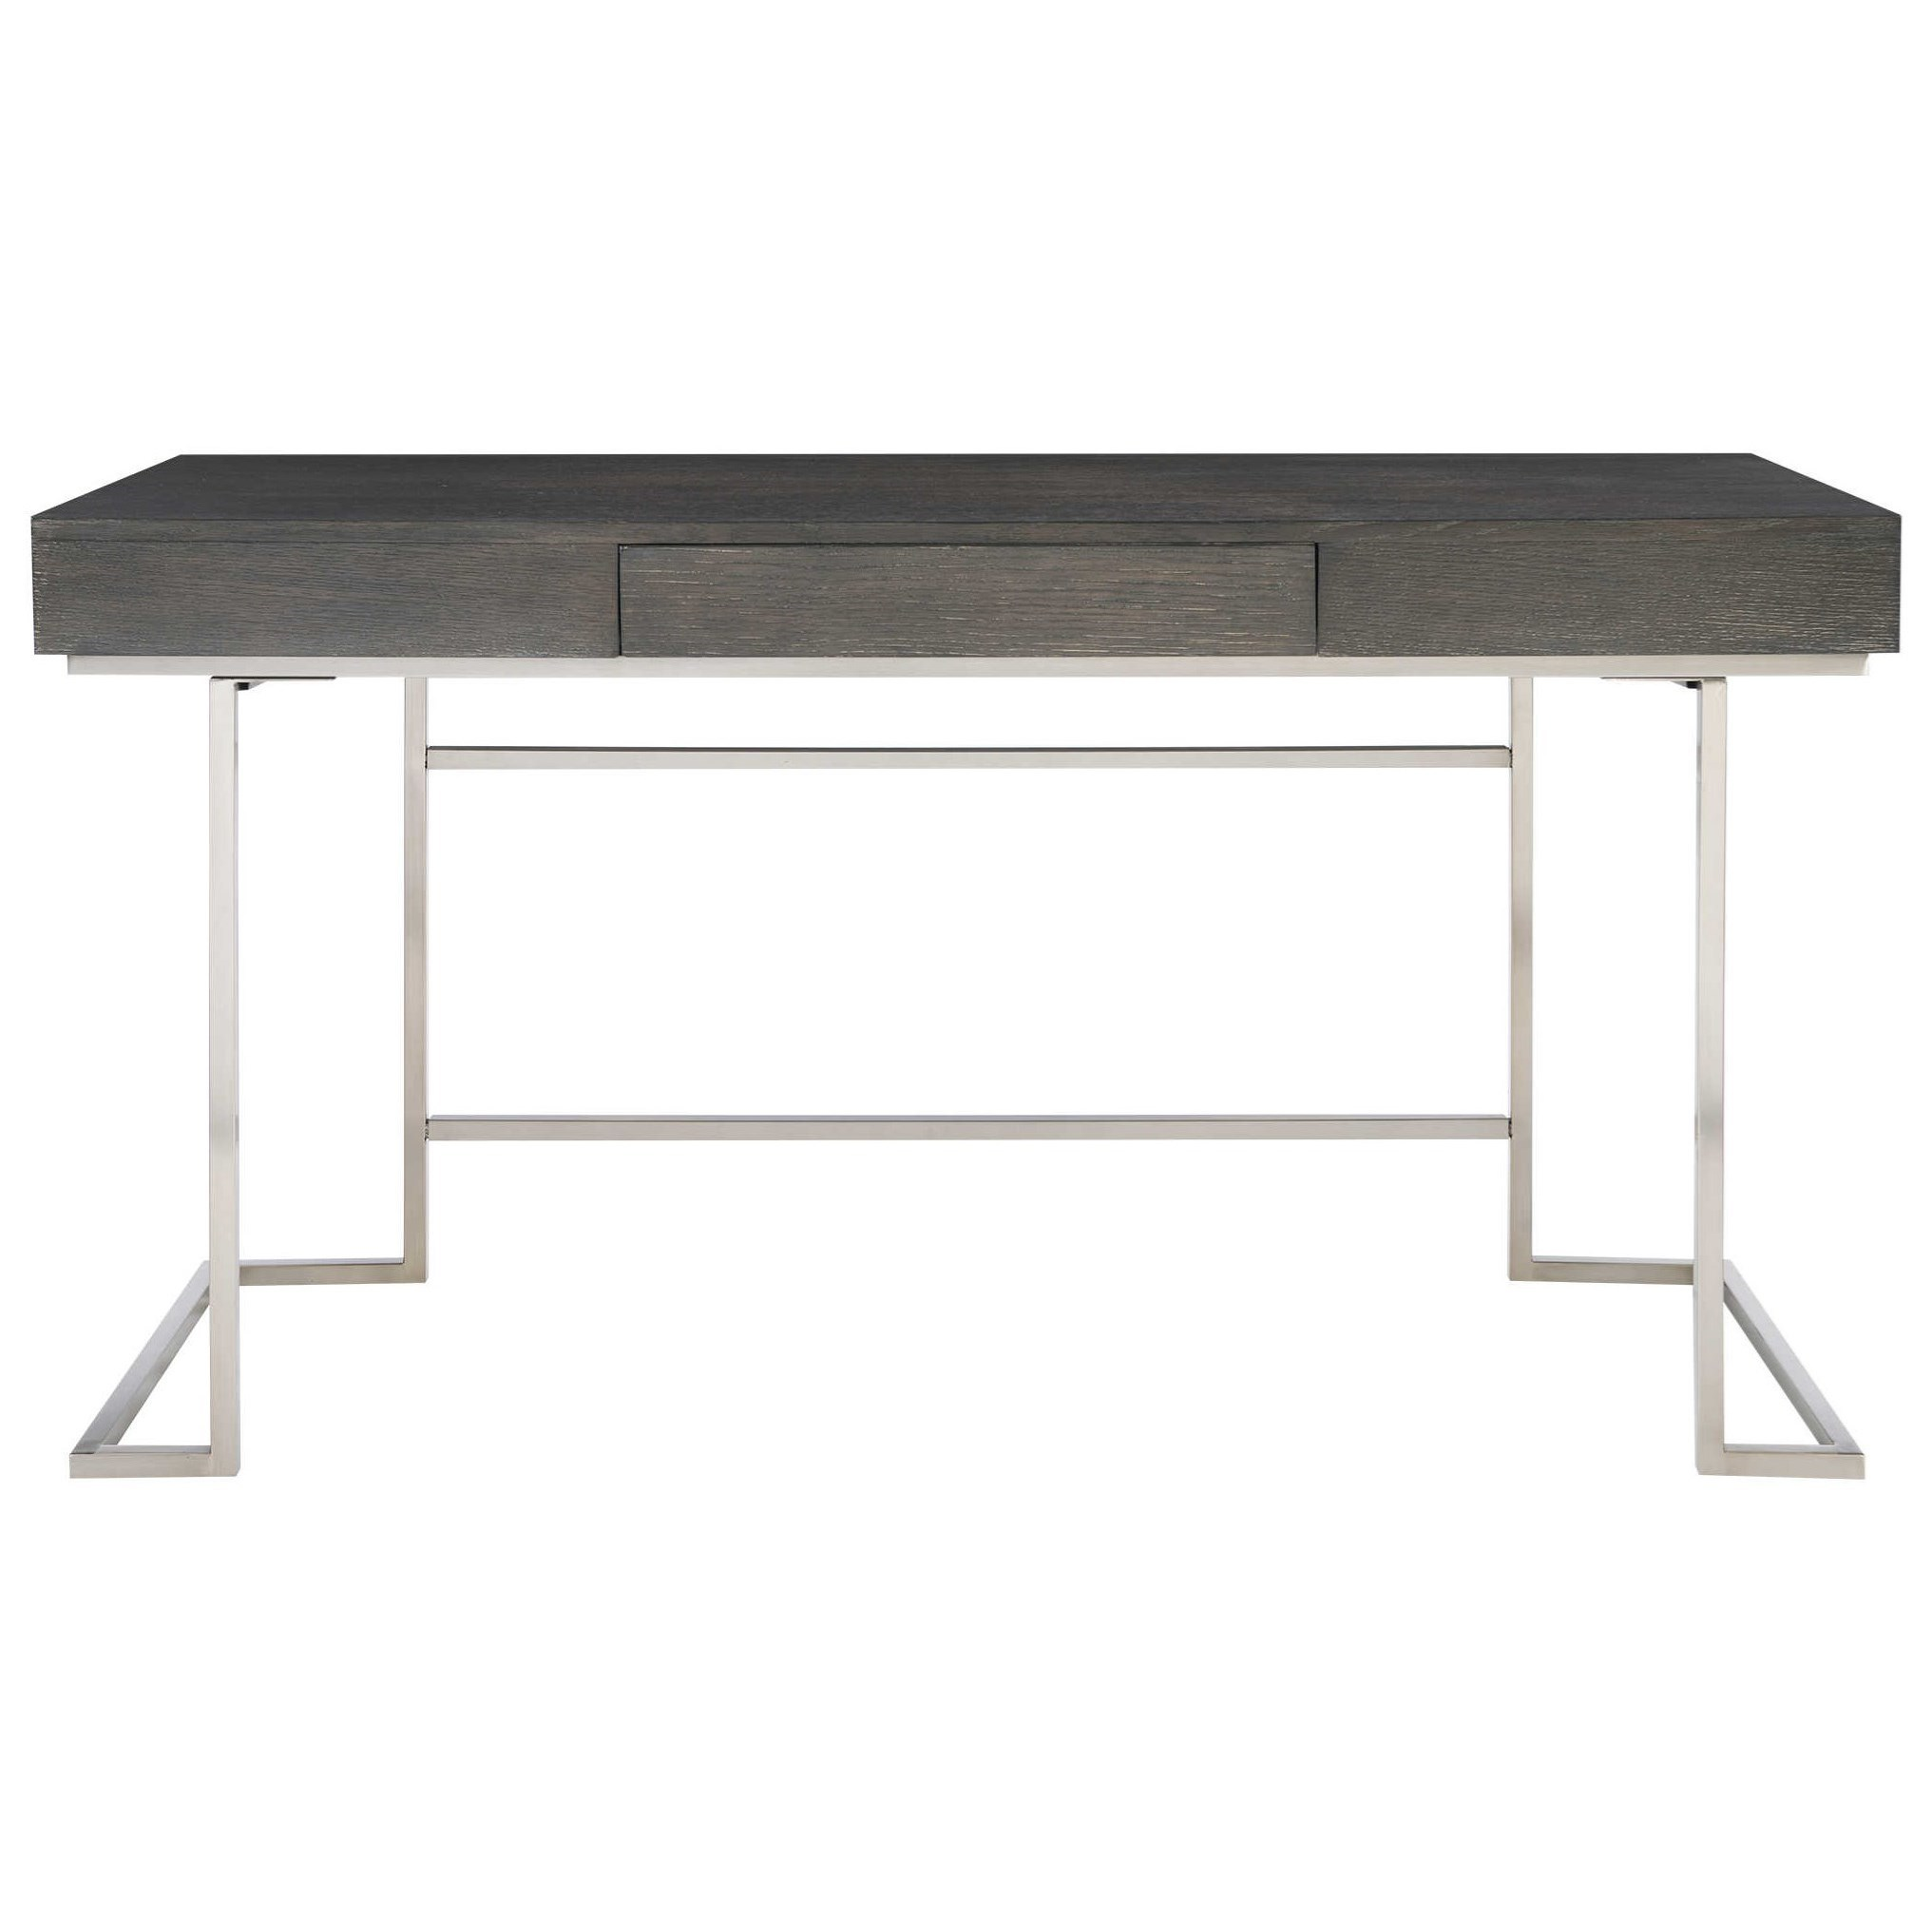 Accent Furniture Claude Modern Oak Desk by Uttermost at Furniture and ApplianceMart